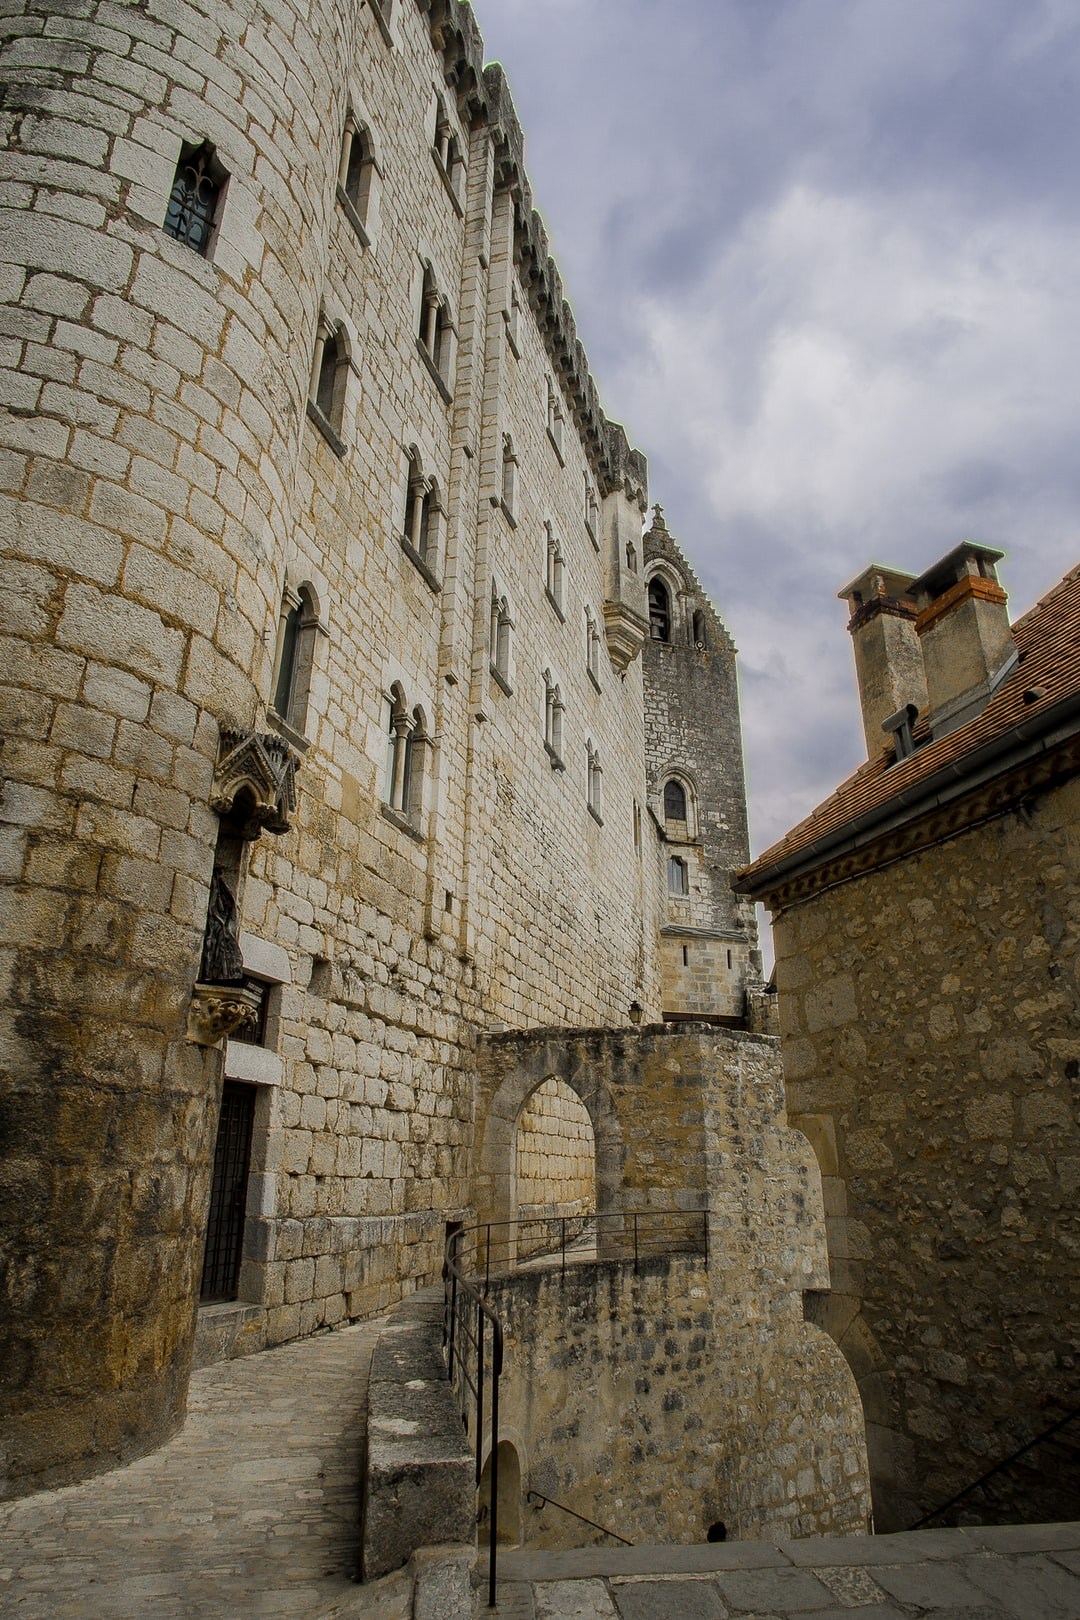 Streets of Rocamadour